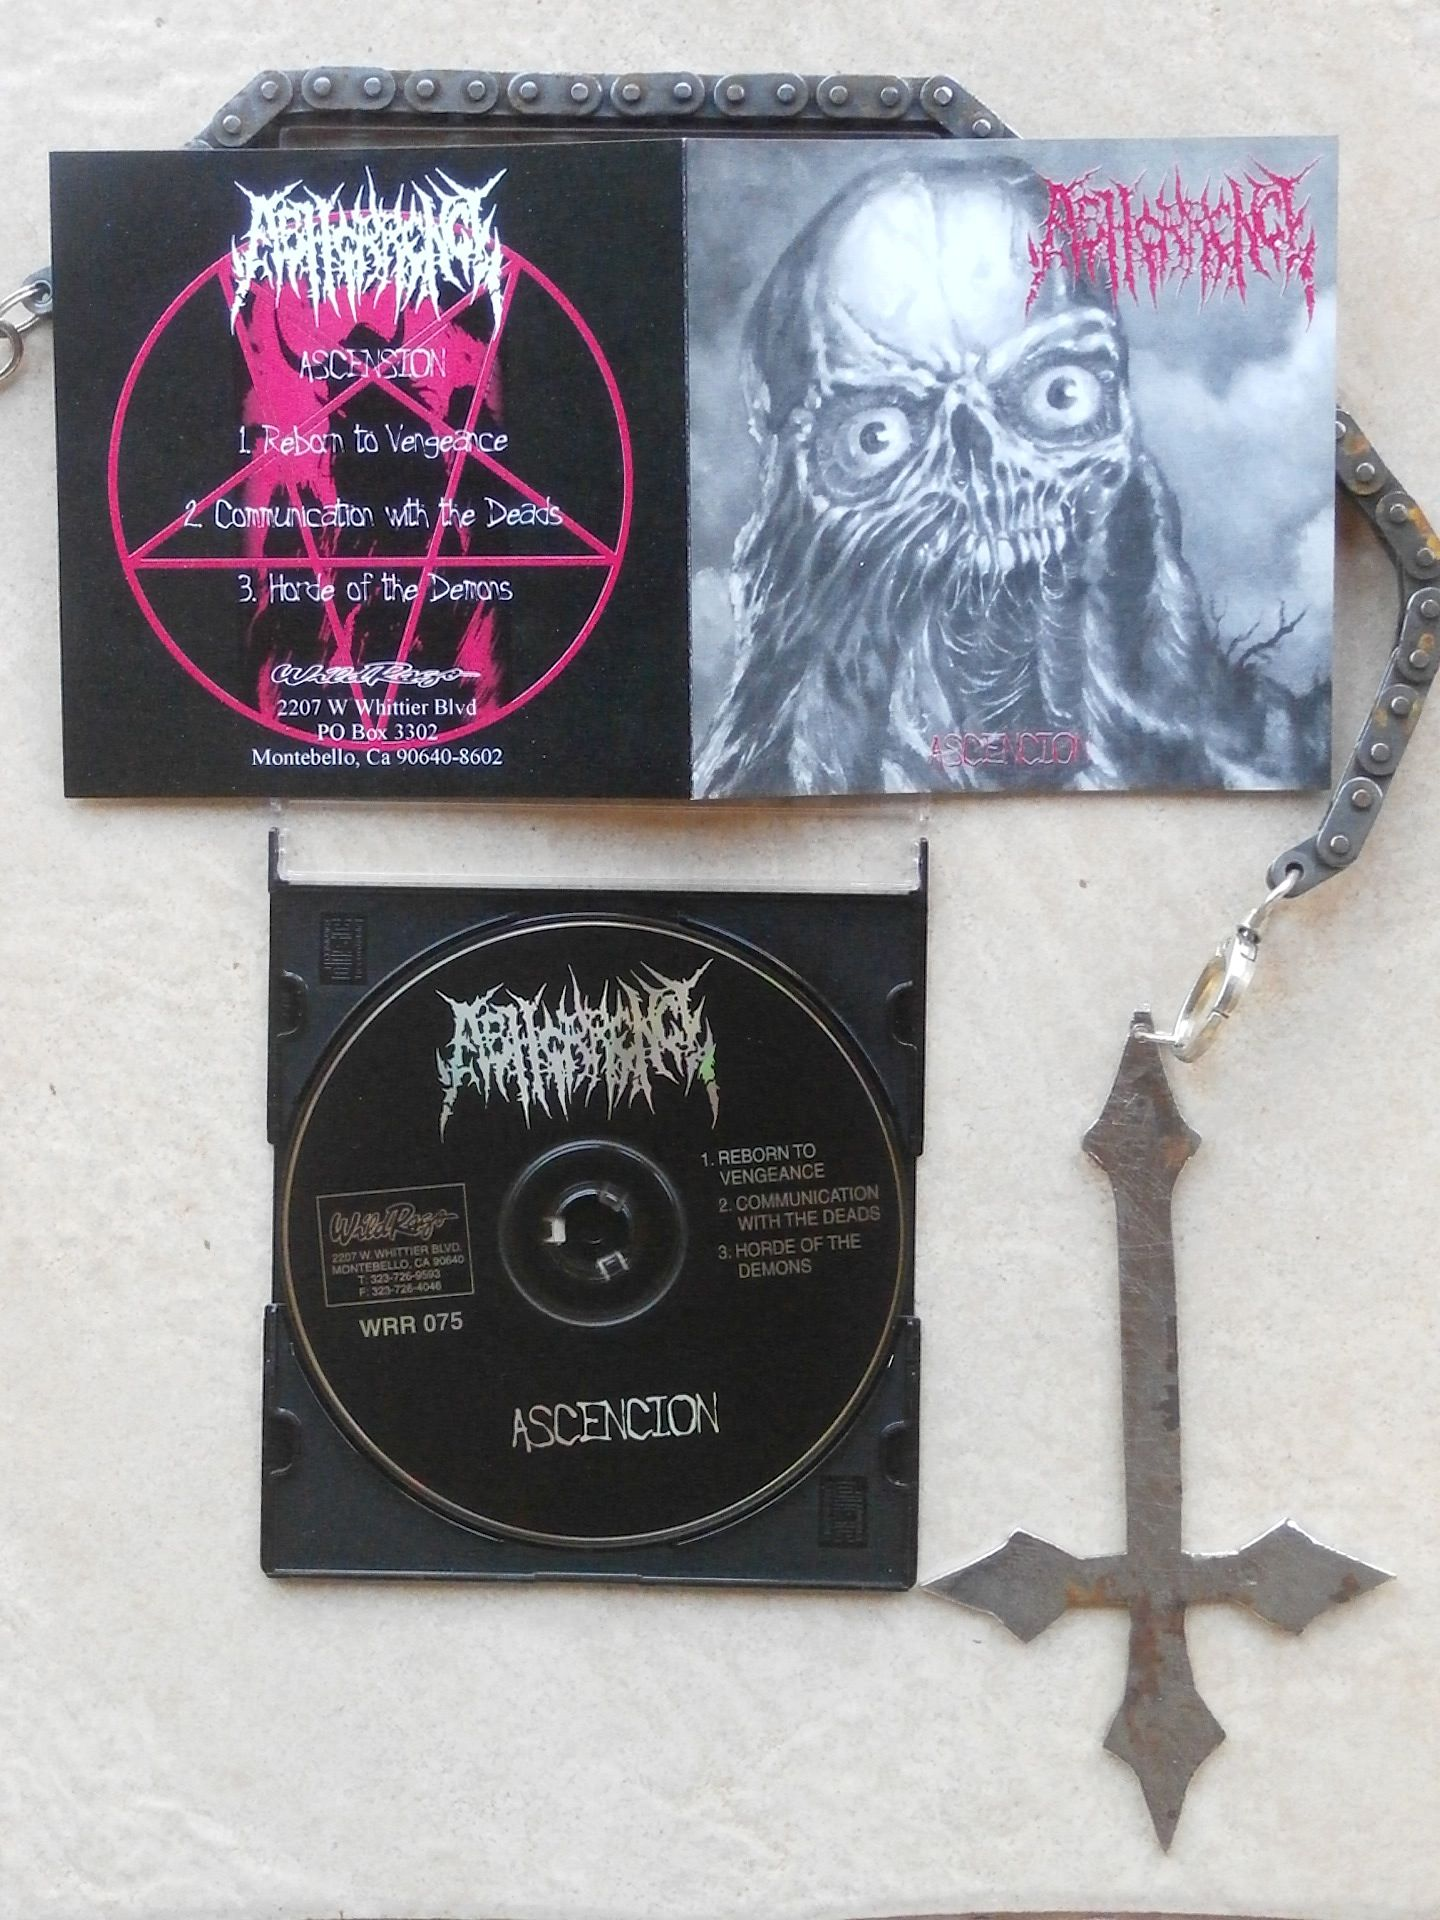 ABHORRENCE orginal trinity w/ Kleber Varnier that give to the band worlwide visibility, here a USA stuff - WILD RAGE RECORDS from 1998. Rigths: FTP - ACDAM 7 management - c+p.